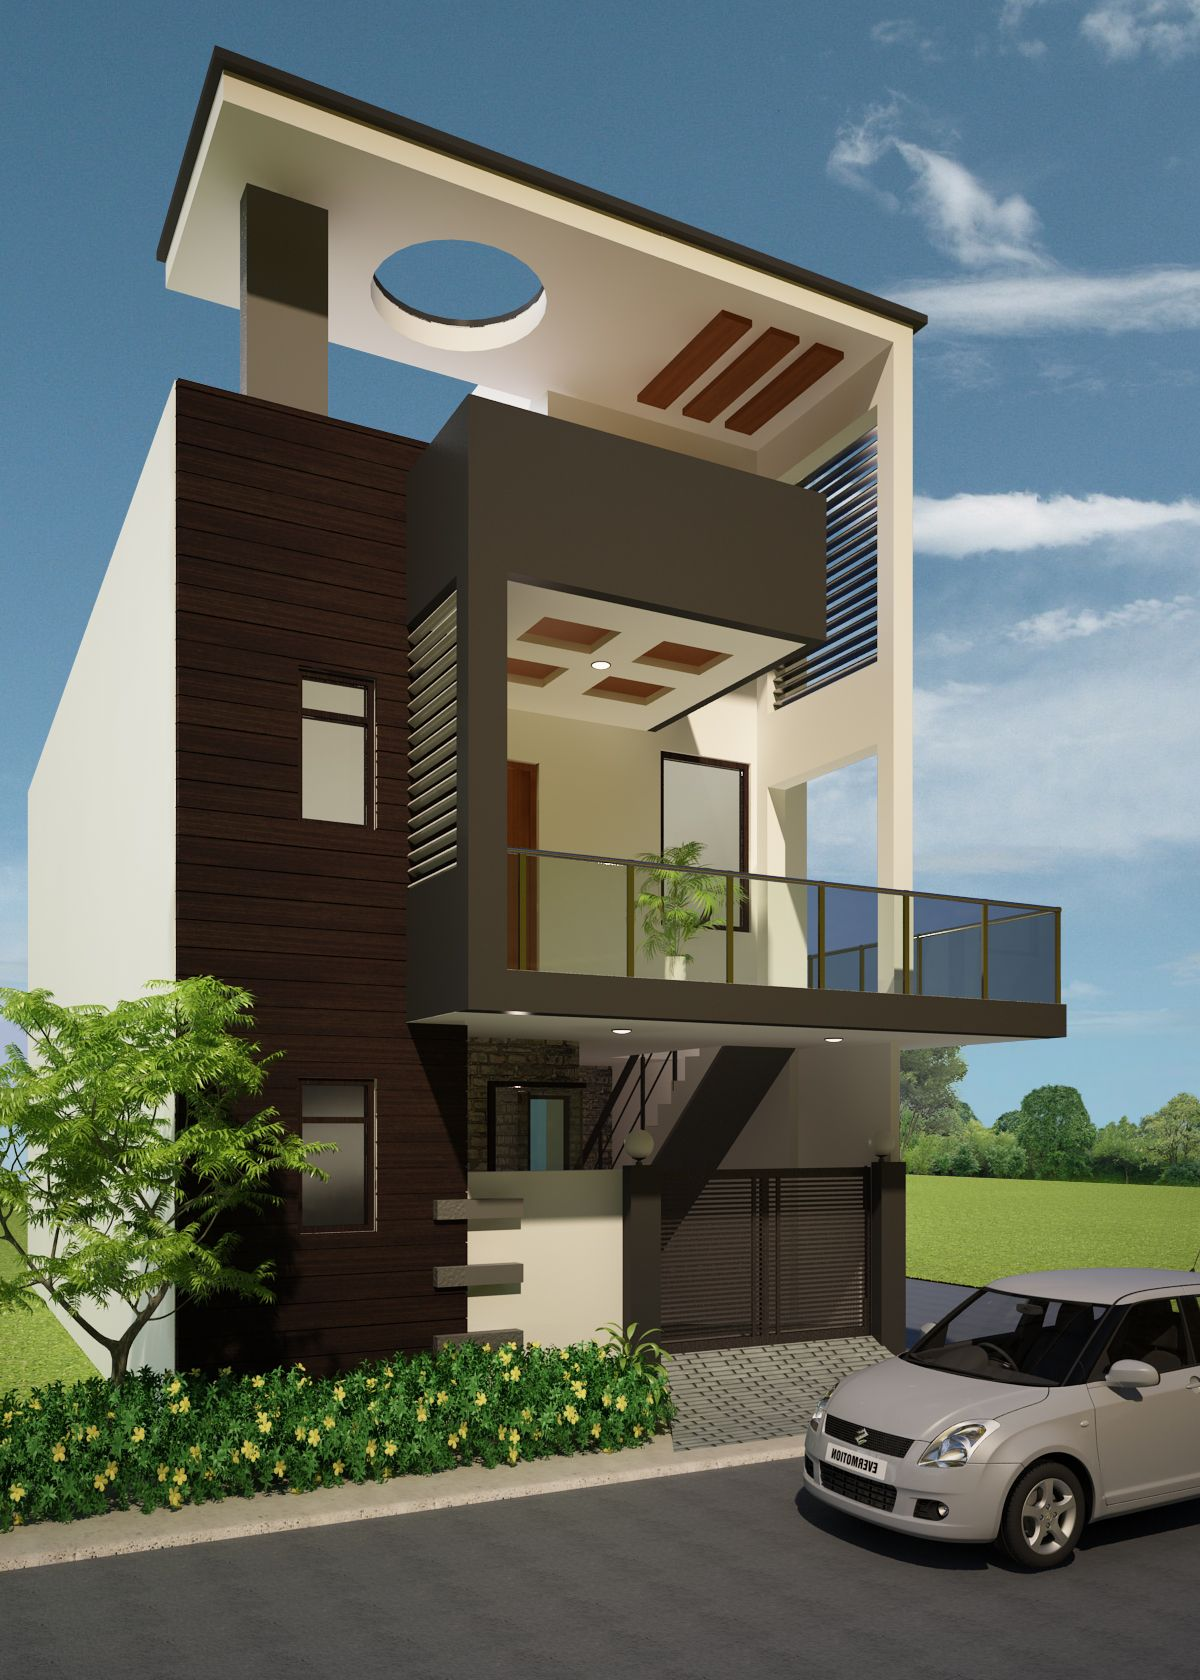 This is a 3D Render of an exterior Duplex house design Bung